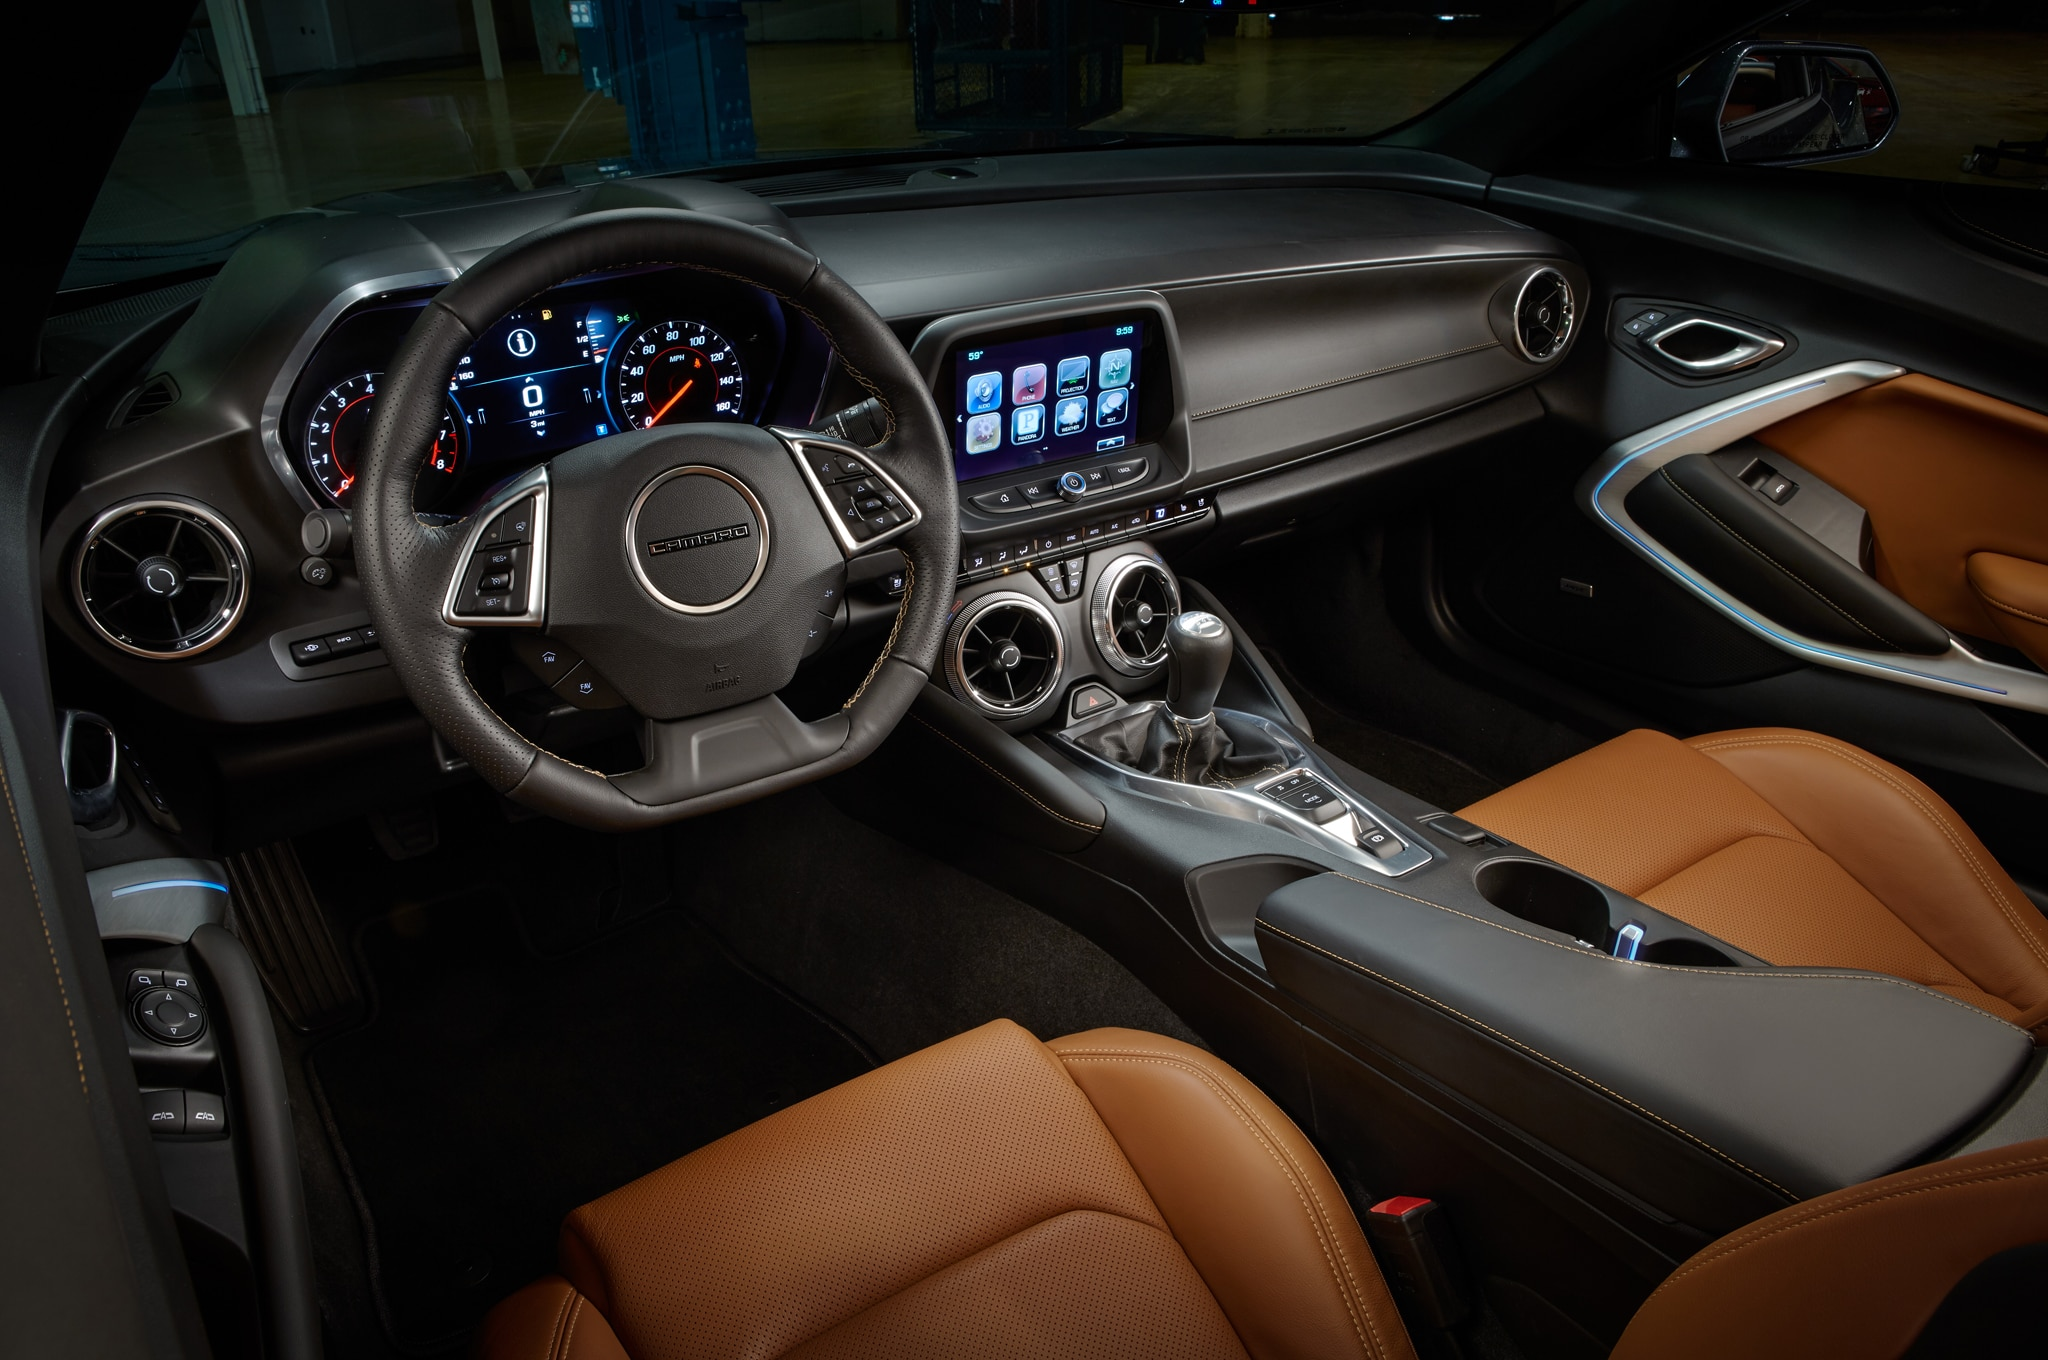 2016 chevrolet ss interior - photo #36